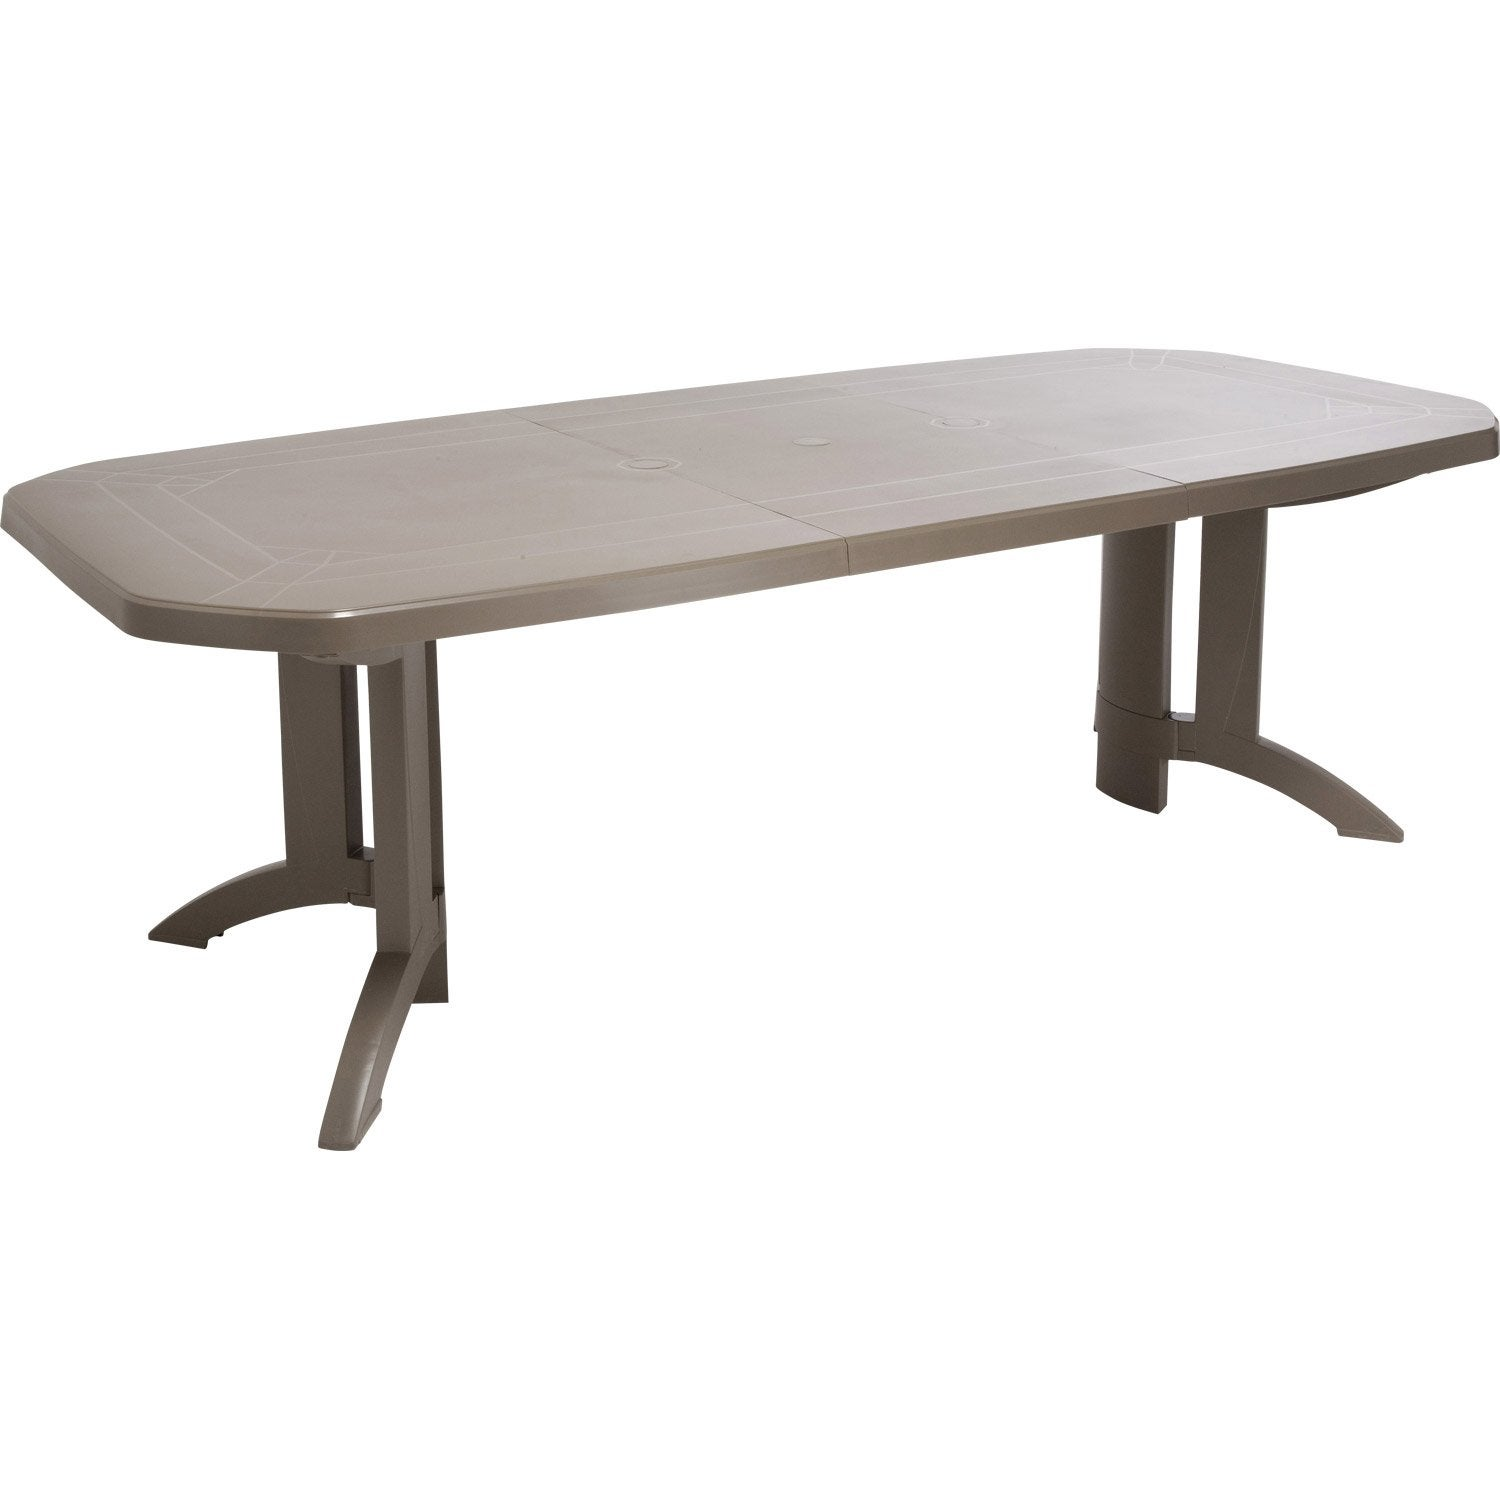 Table De Jardin Grosfillex V Ga Rectangulaire Taupe 10